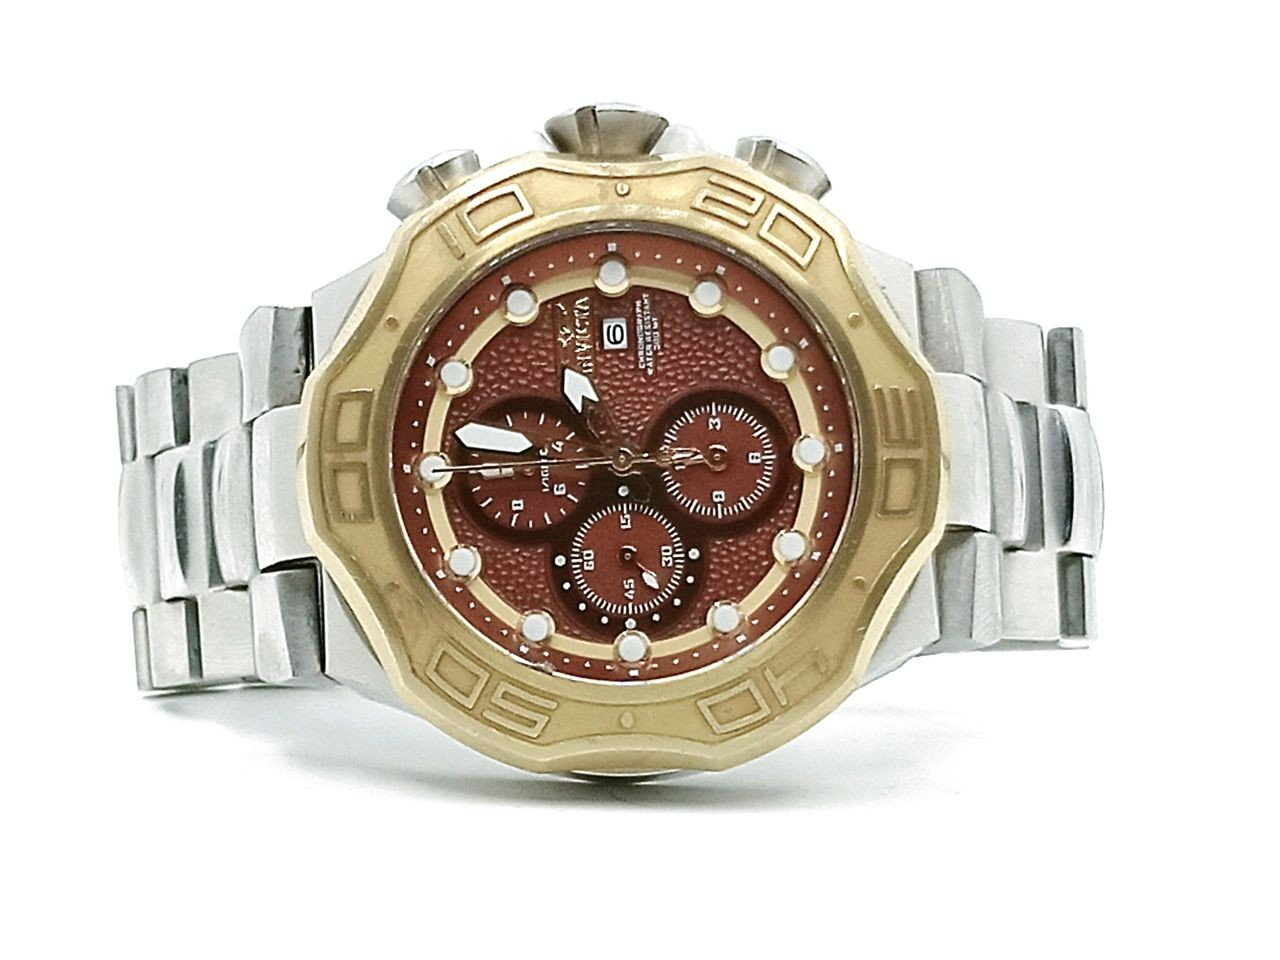 INVICTA PRO DIVER MASTER OF OCEANS 12432 WATCH